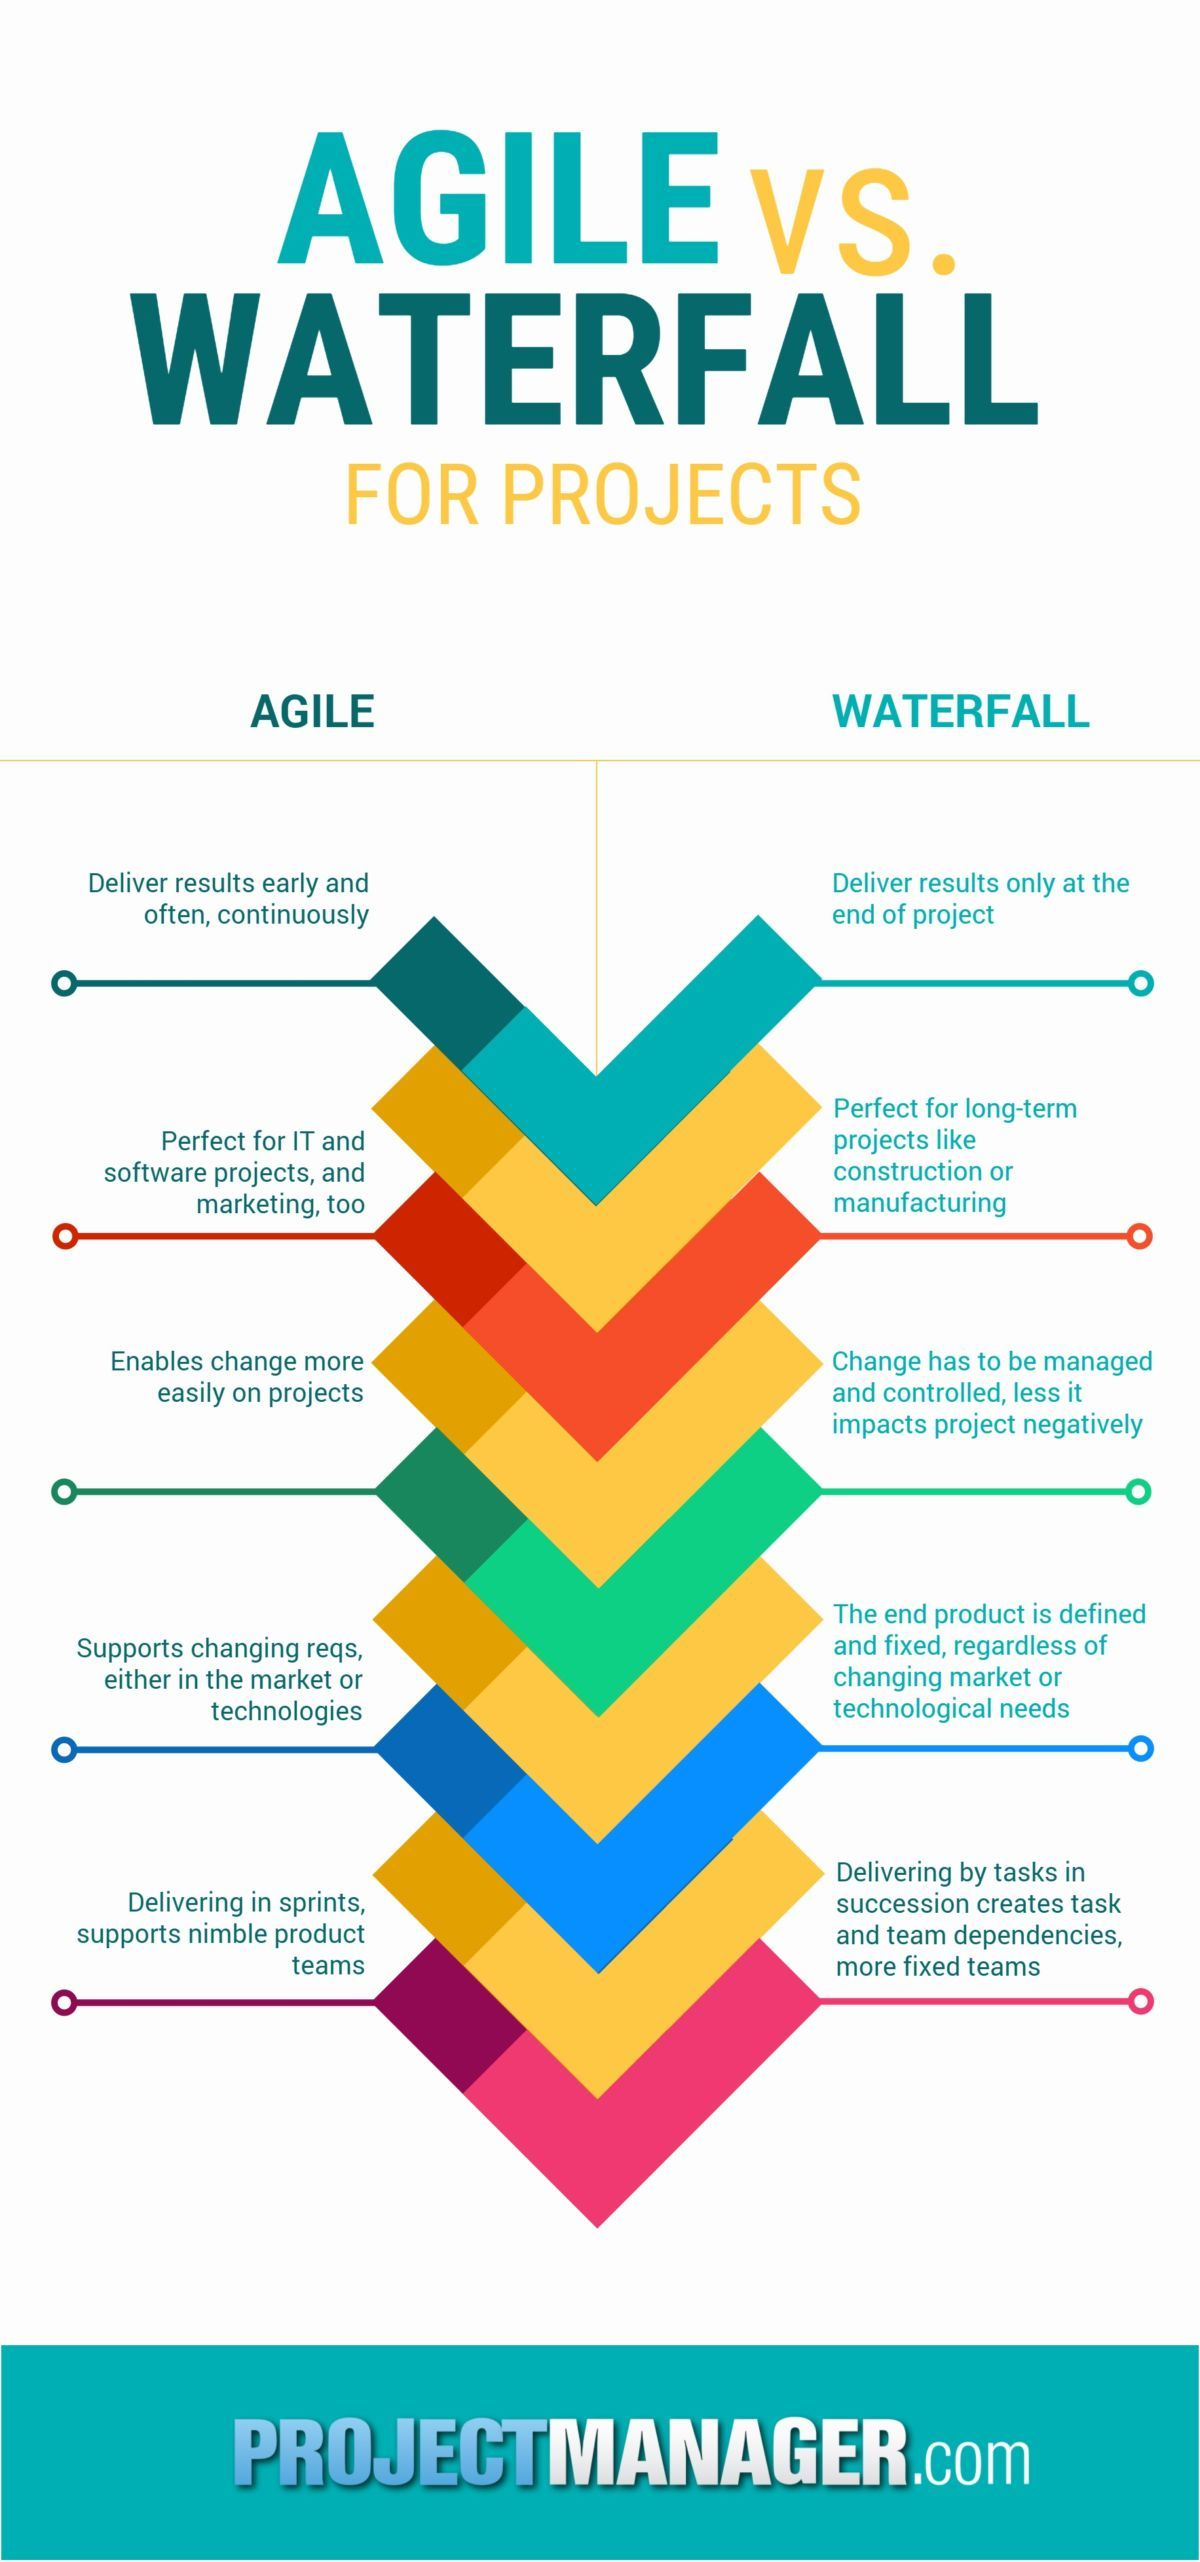 Agile Management agile versus waterfall for projects | project management